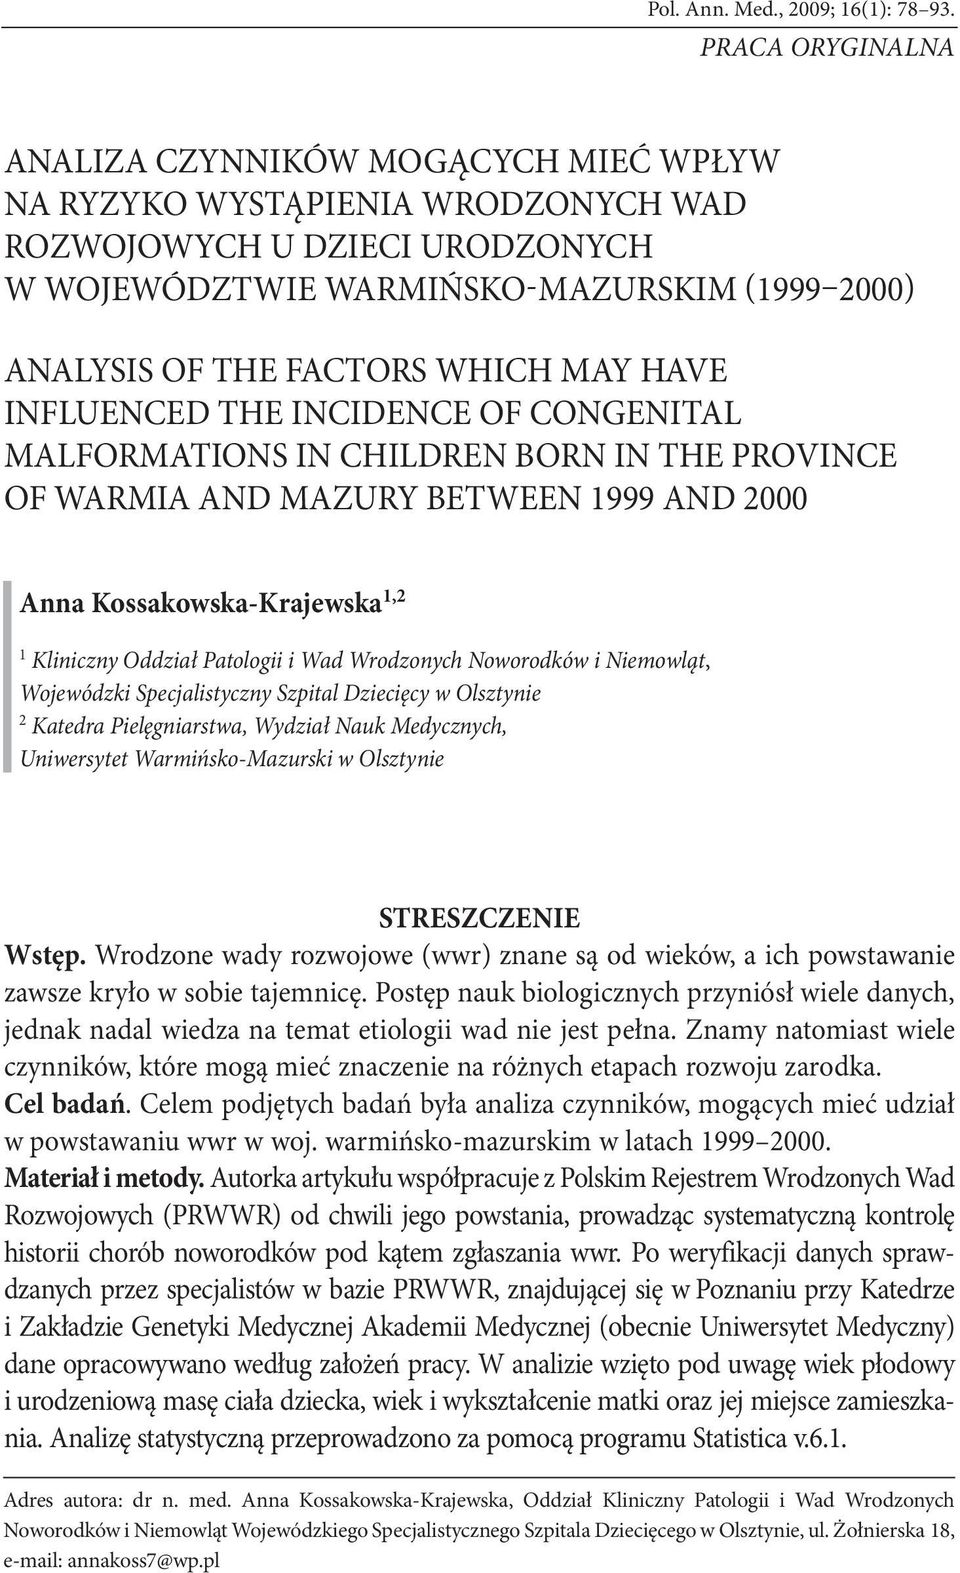 WHICH MAY HAVE INFLUENCED THE INCIDENCE OF CONGENITAL MALFORMATIONS IN CHILDREN BORN IN THE PROVINCE OF WARMIA AND MAZURY BETWEEN 1999 AND 2000 Anna Kossakowska-Krajewska 1,2 1 Kliniczny Oddział